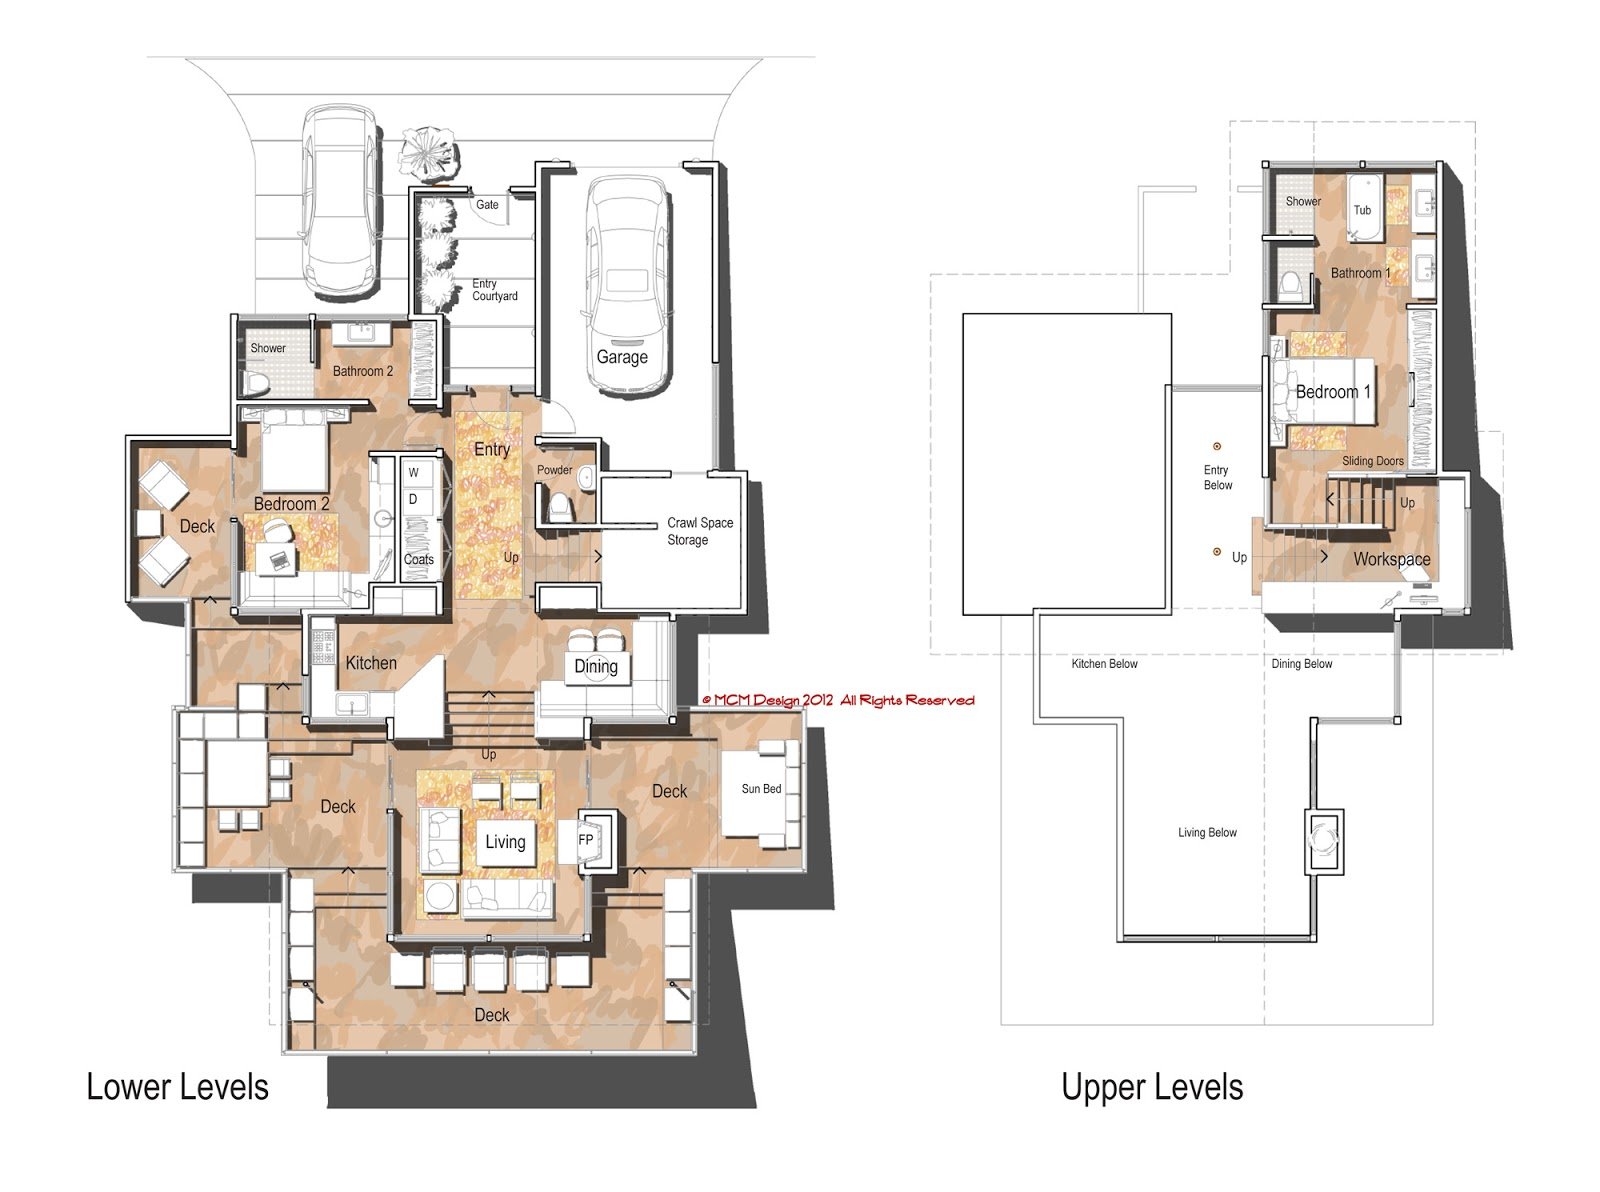 Modern Homes Floorplans Mcm Design November 2012